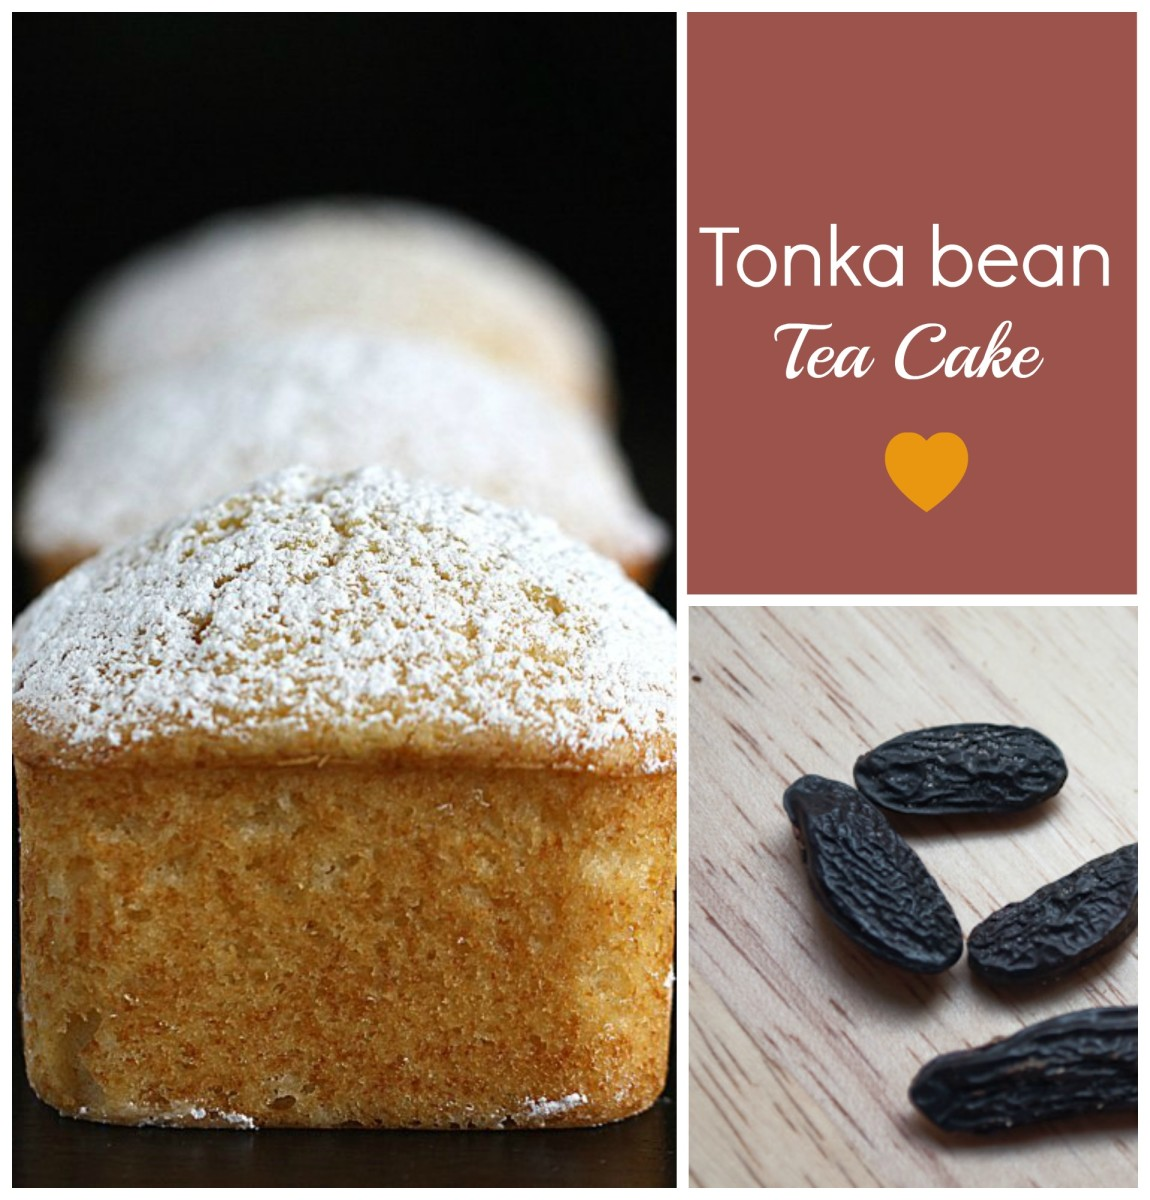 In some countries, the Tonka bean is used as flavouring in the culinary world for puddings, smoothies, cakes and other desserts. Featured here is a Tonka bean Tea Cake. (Image edited by healthmunsta.)